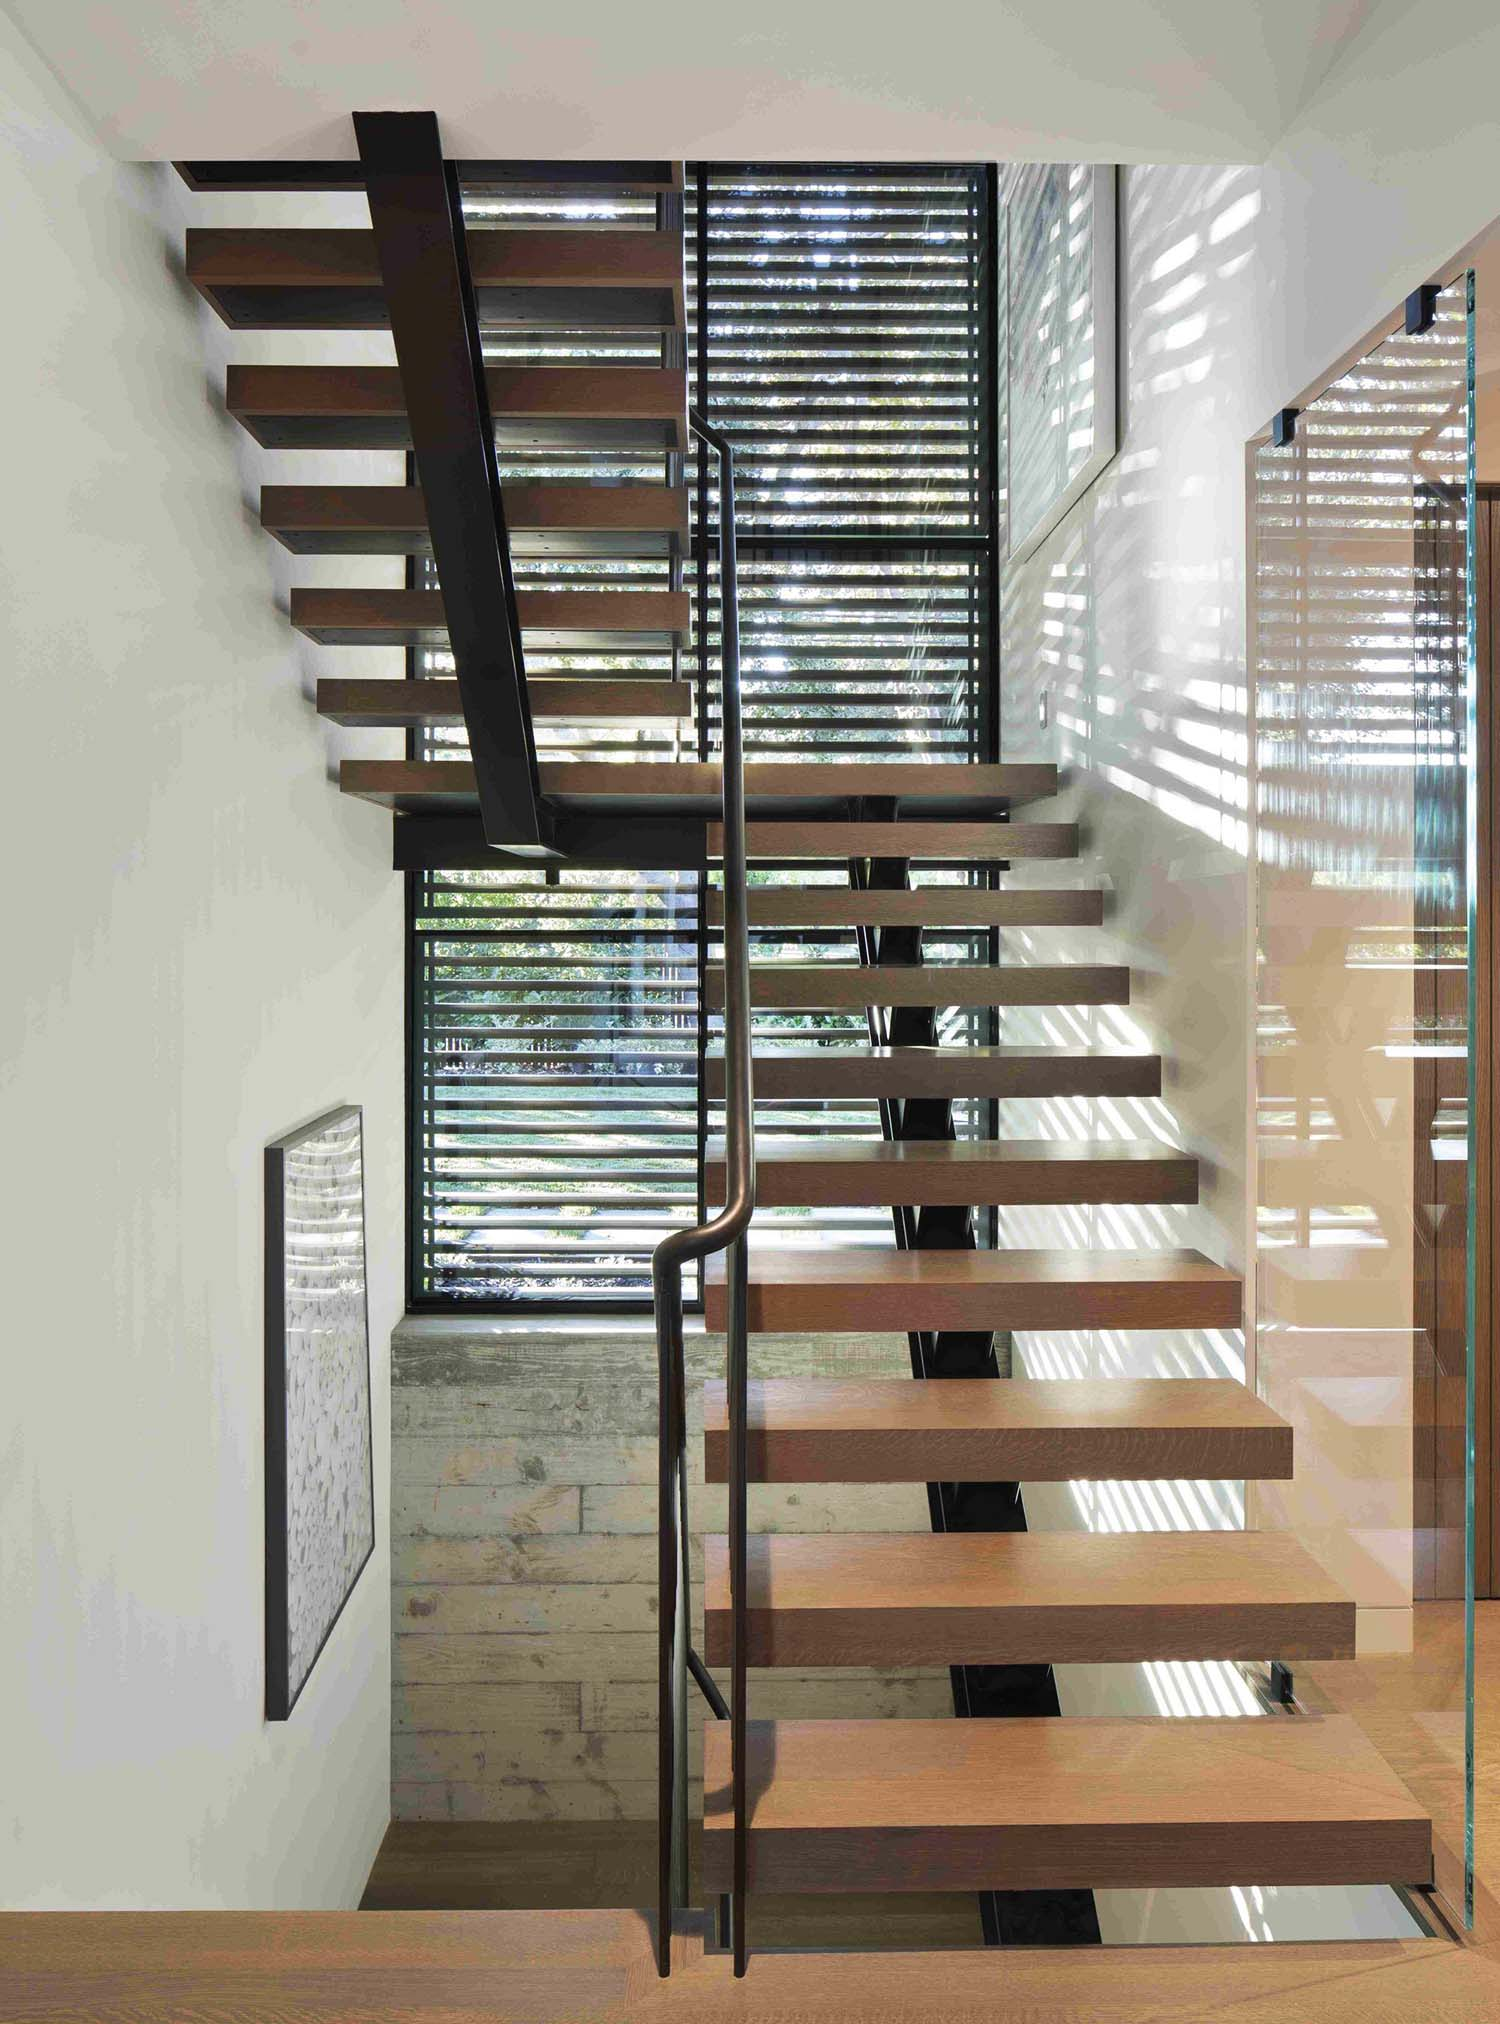 Center black steel backbone support with wood steps. Open risers.